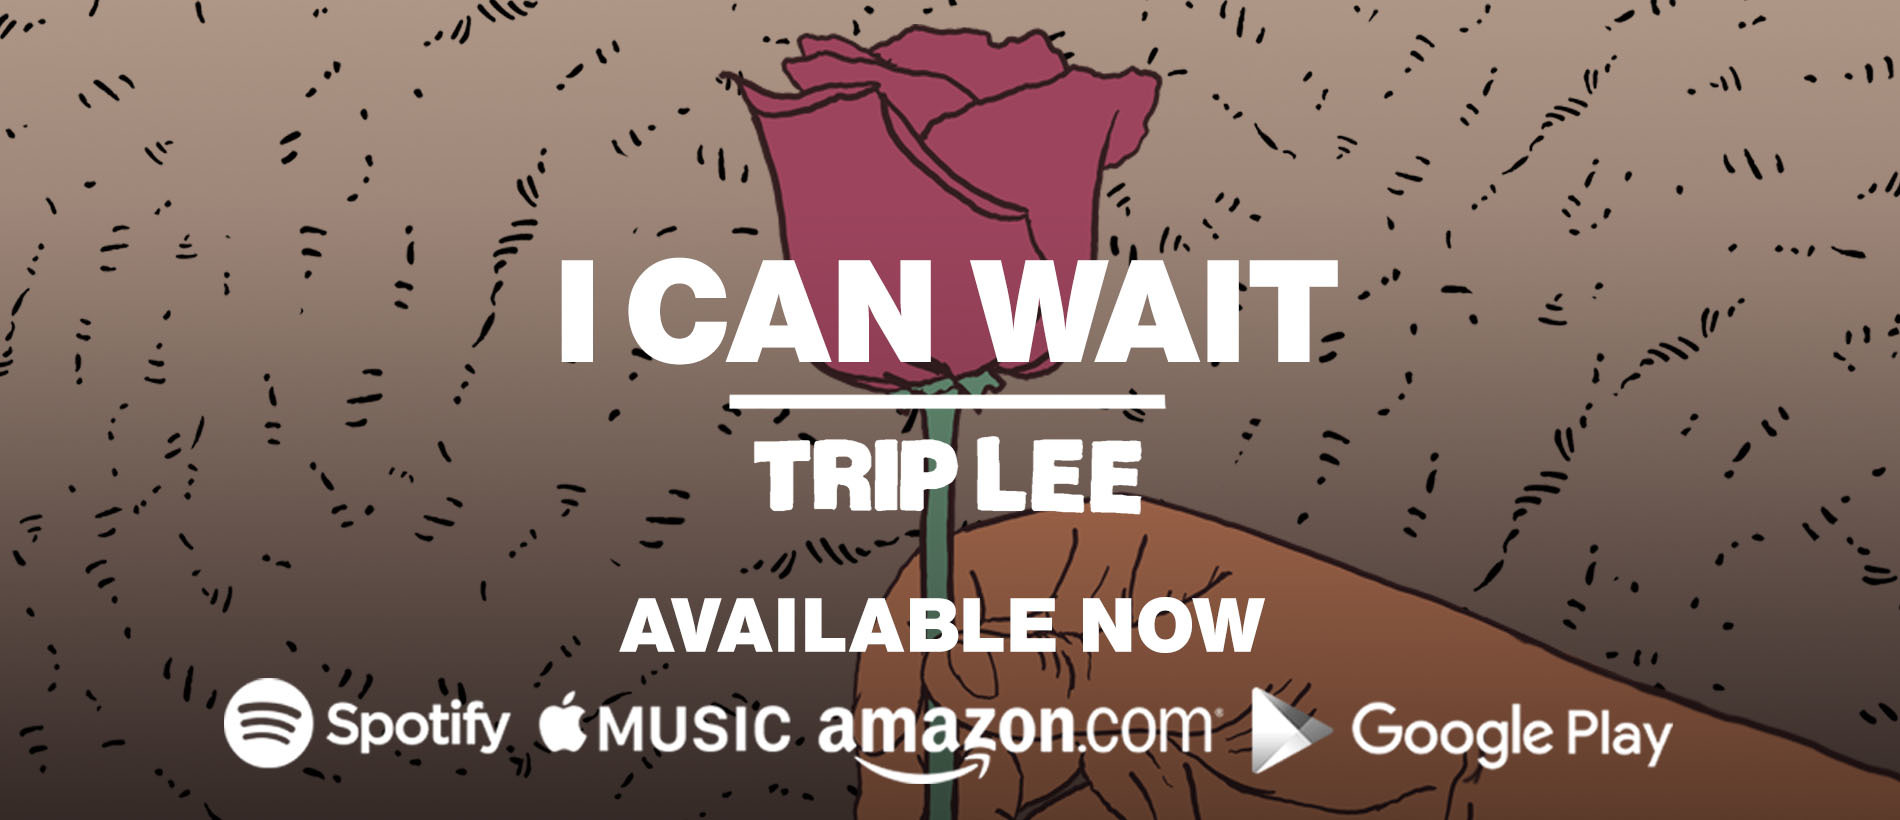 TRIP LEE X I CAN WAIT